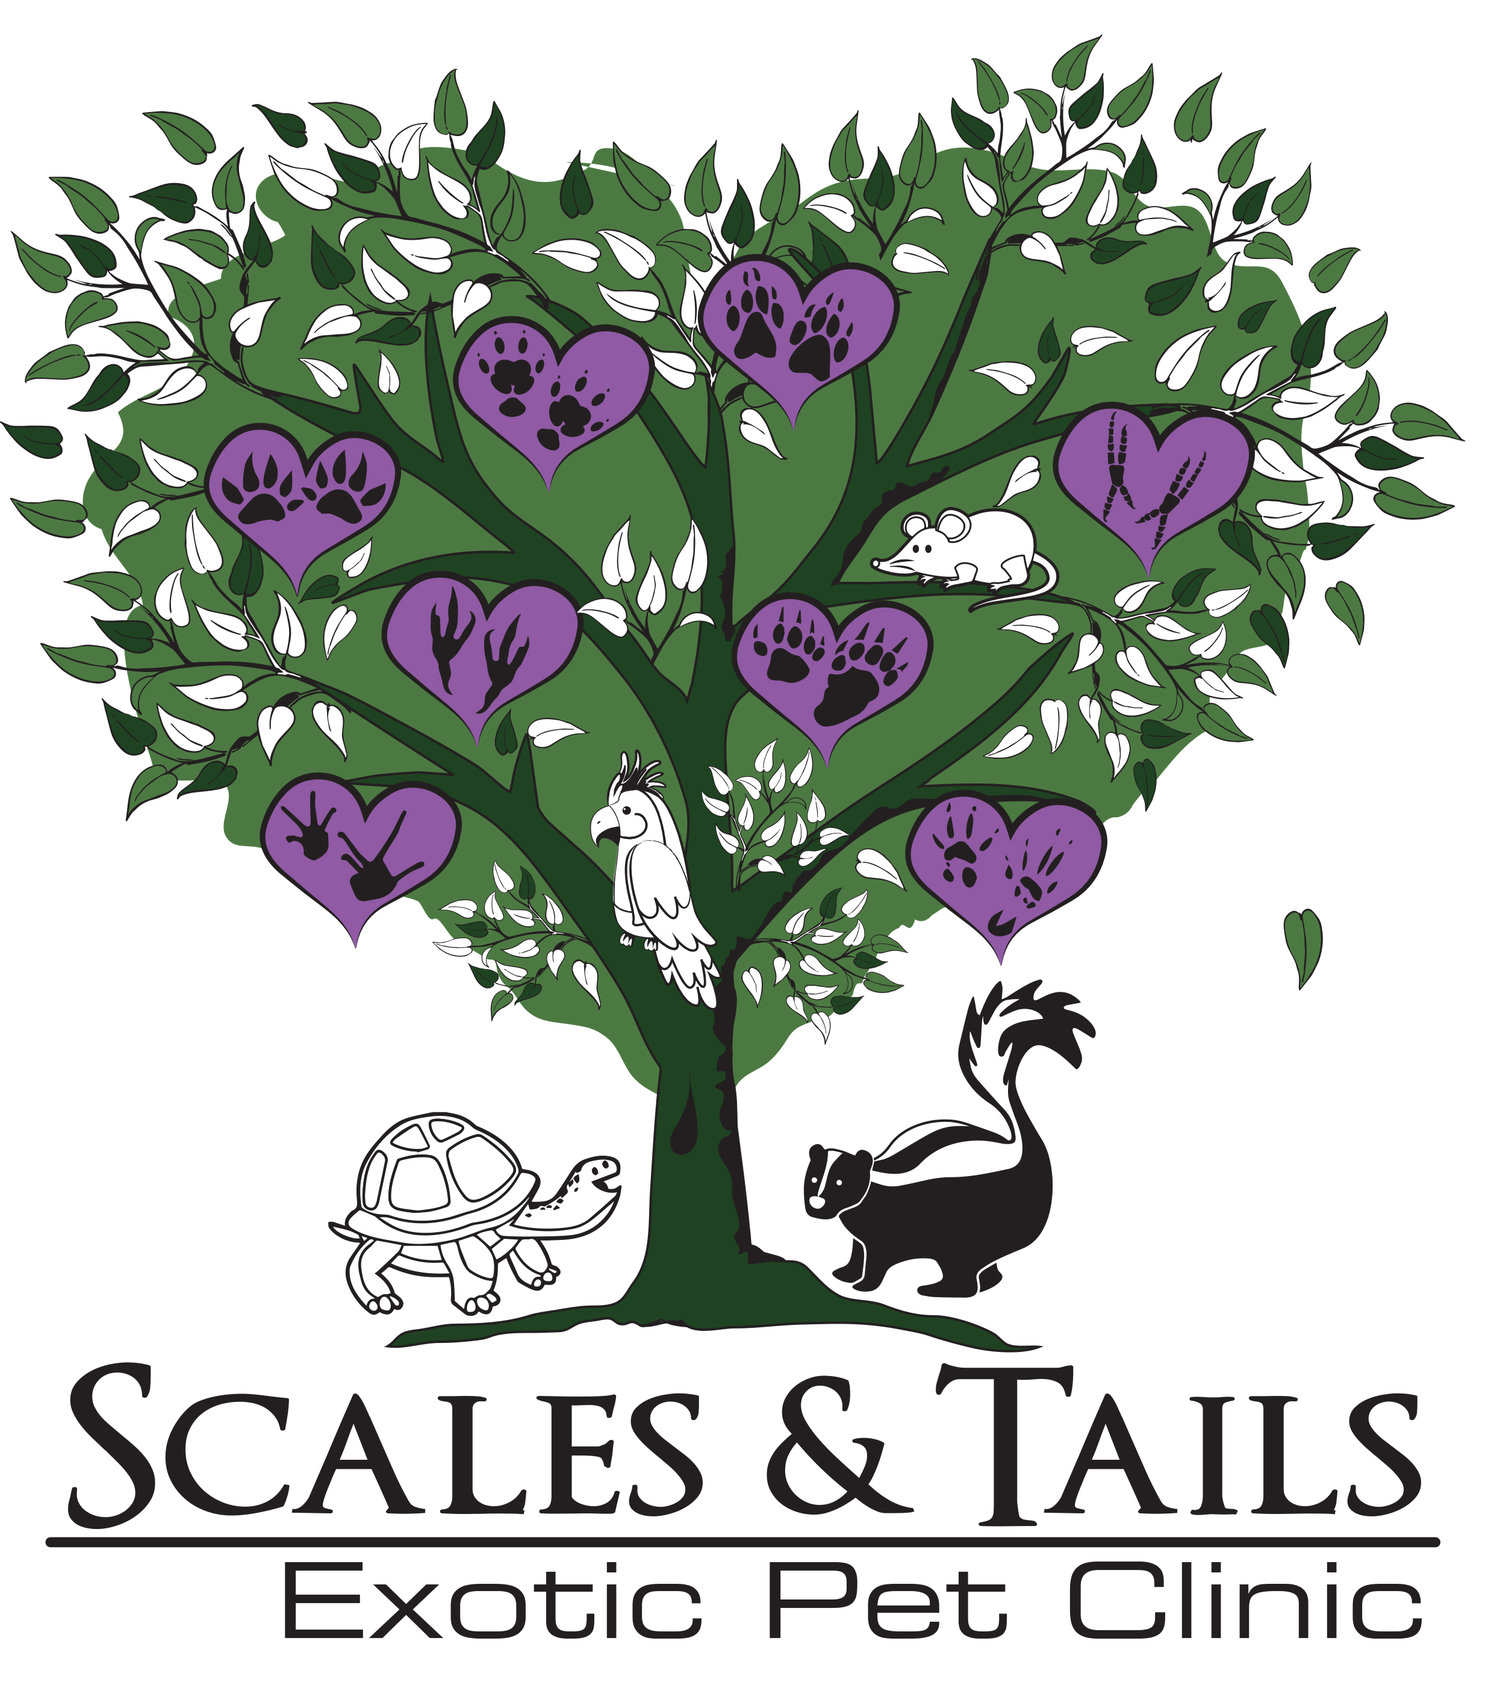 Scales & Tails Exotic Pet Clinic